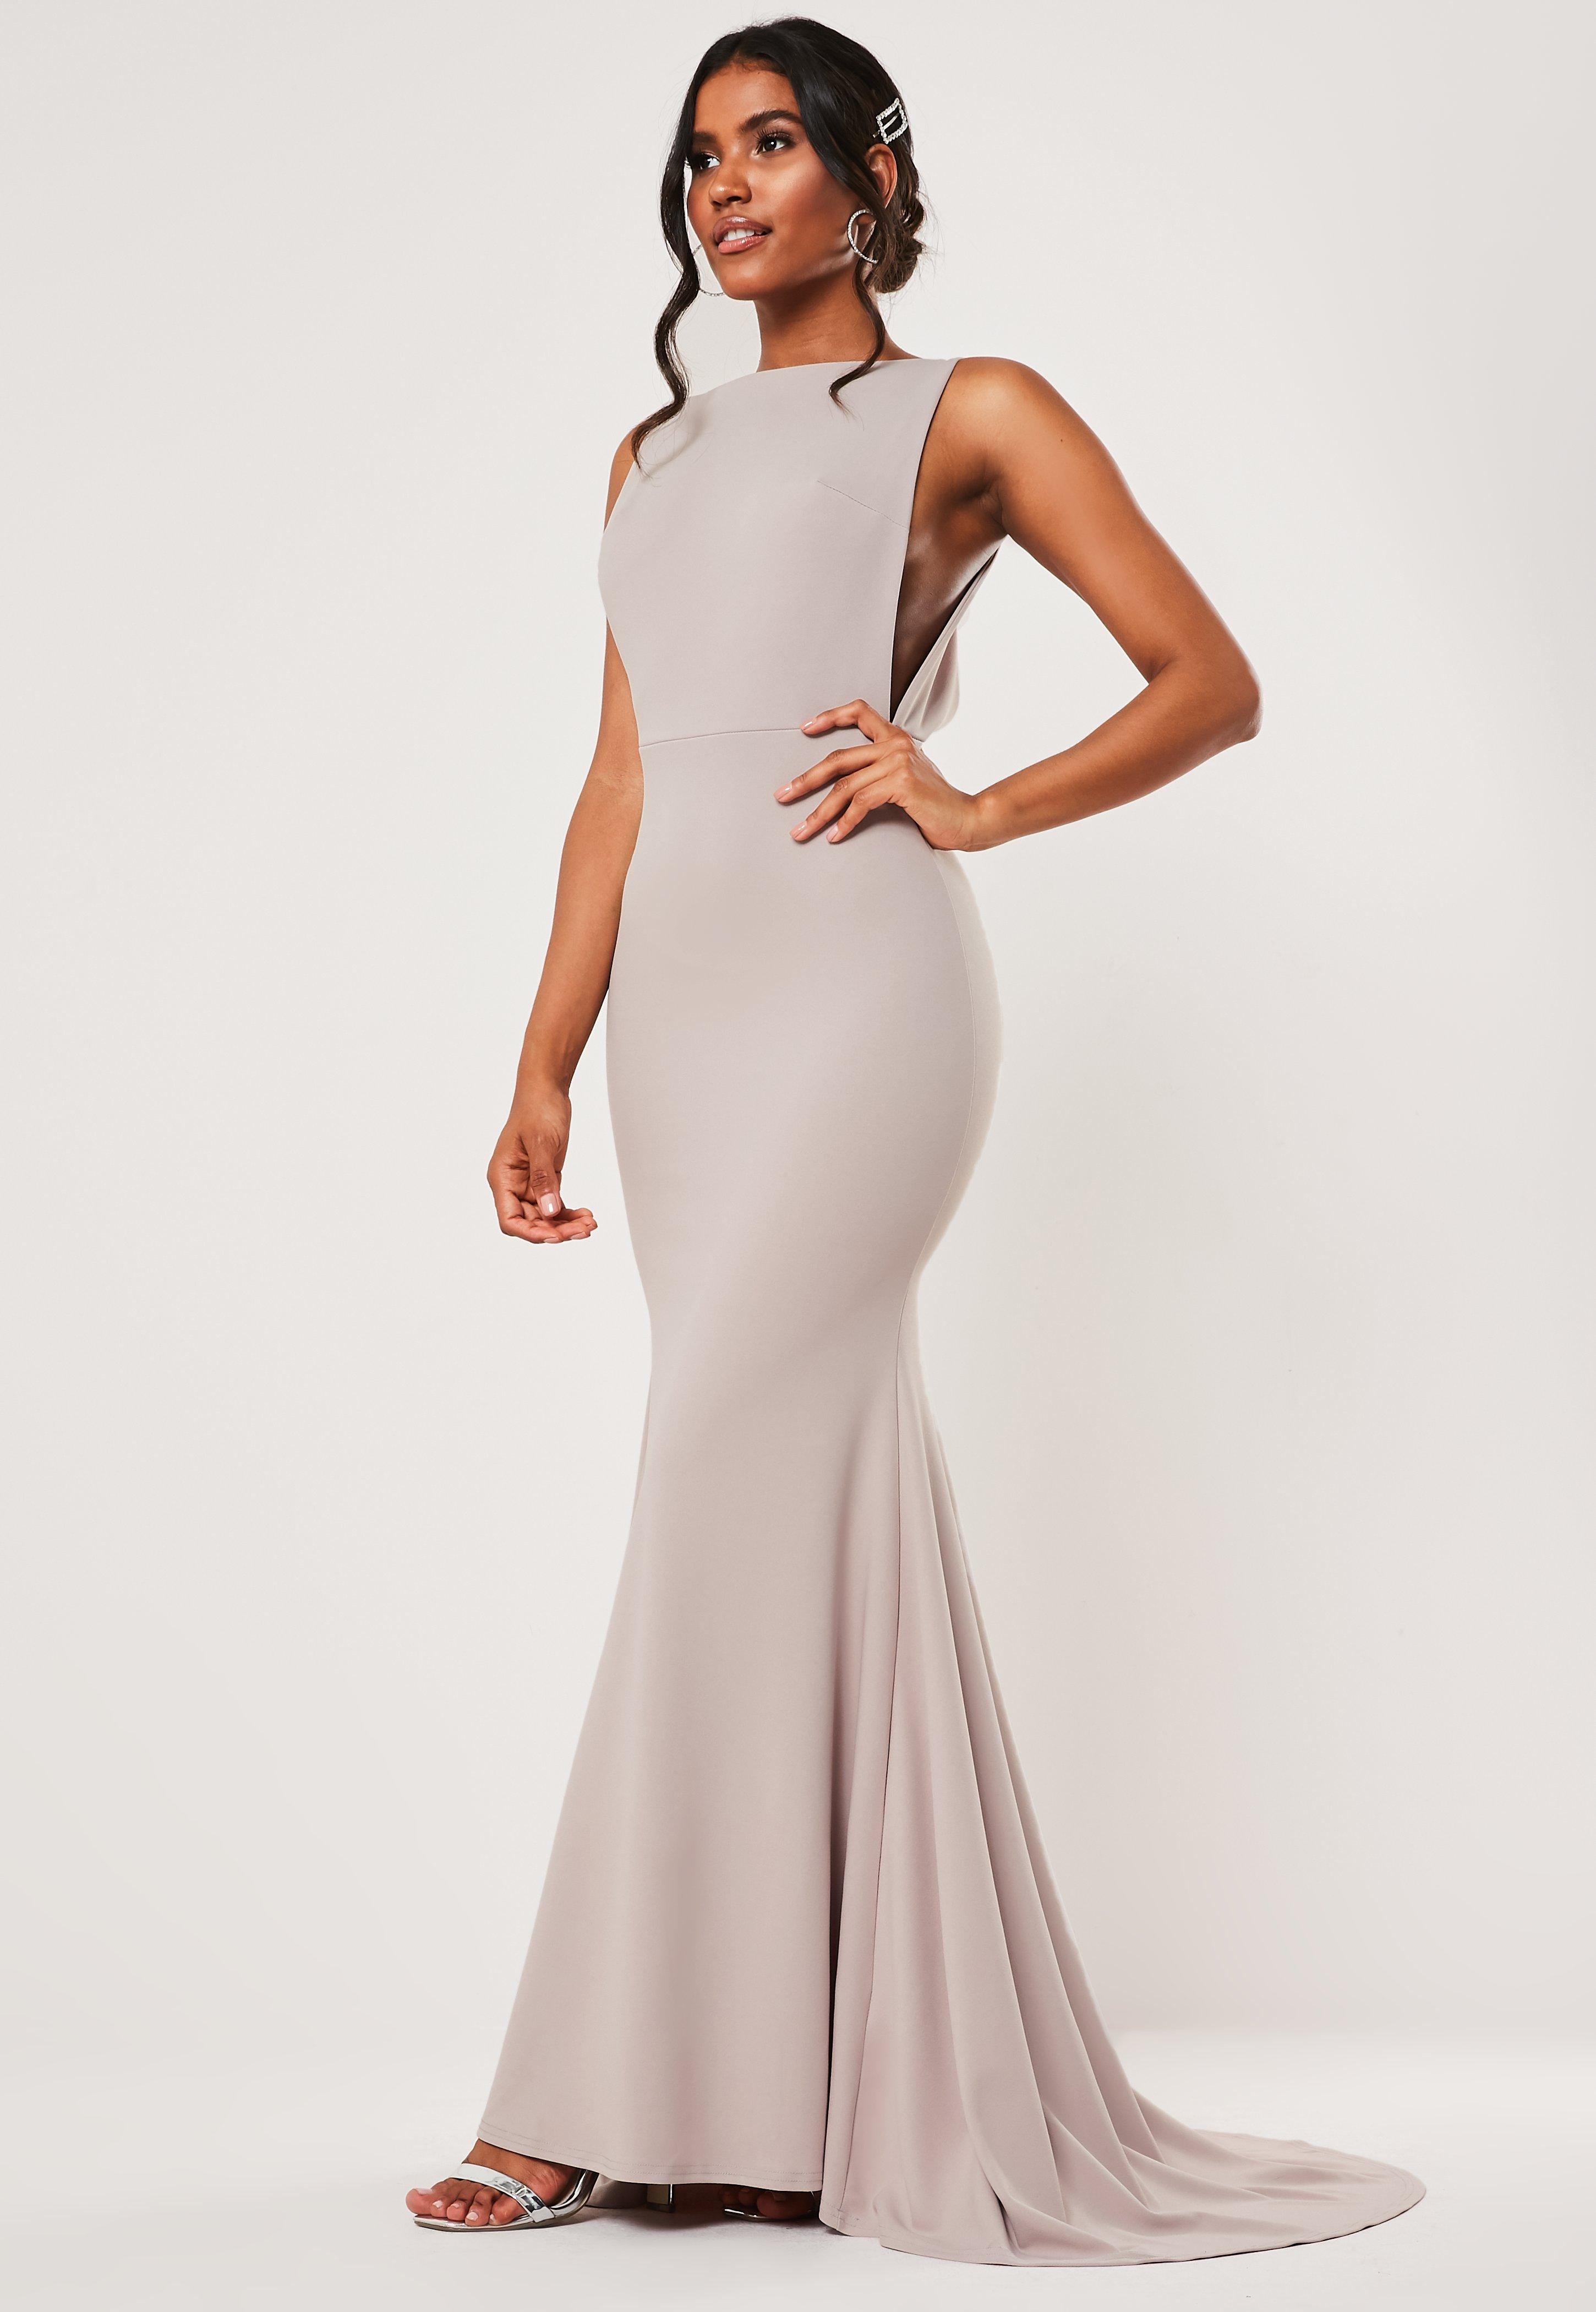 Tall Bridesmaid Gray Sleeveless Low Back Maxi Dress by Missguided